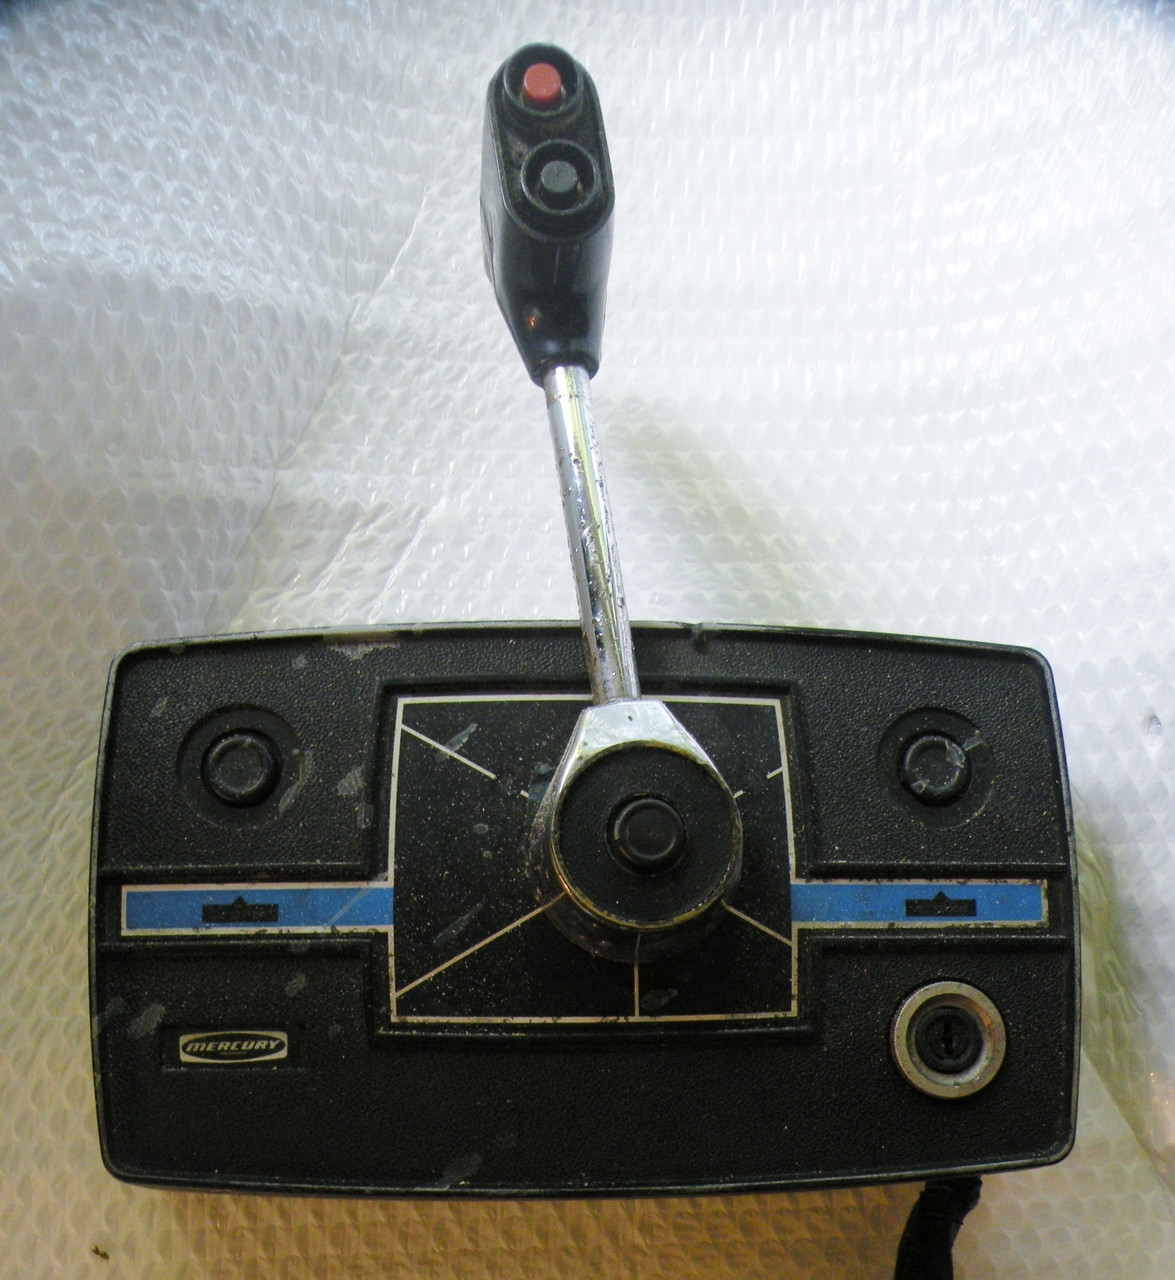 Mercury Outboard Side Mount Control Box, Power Trim, 80's Style